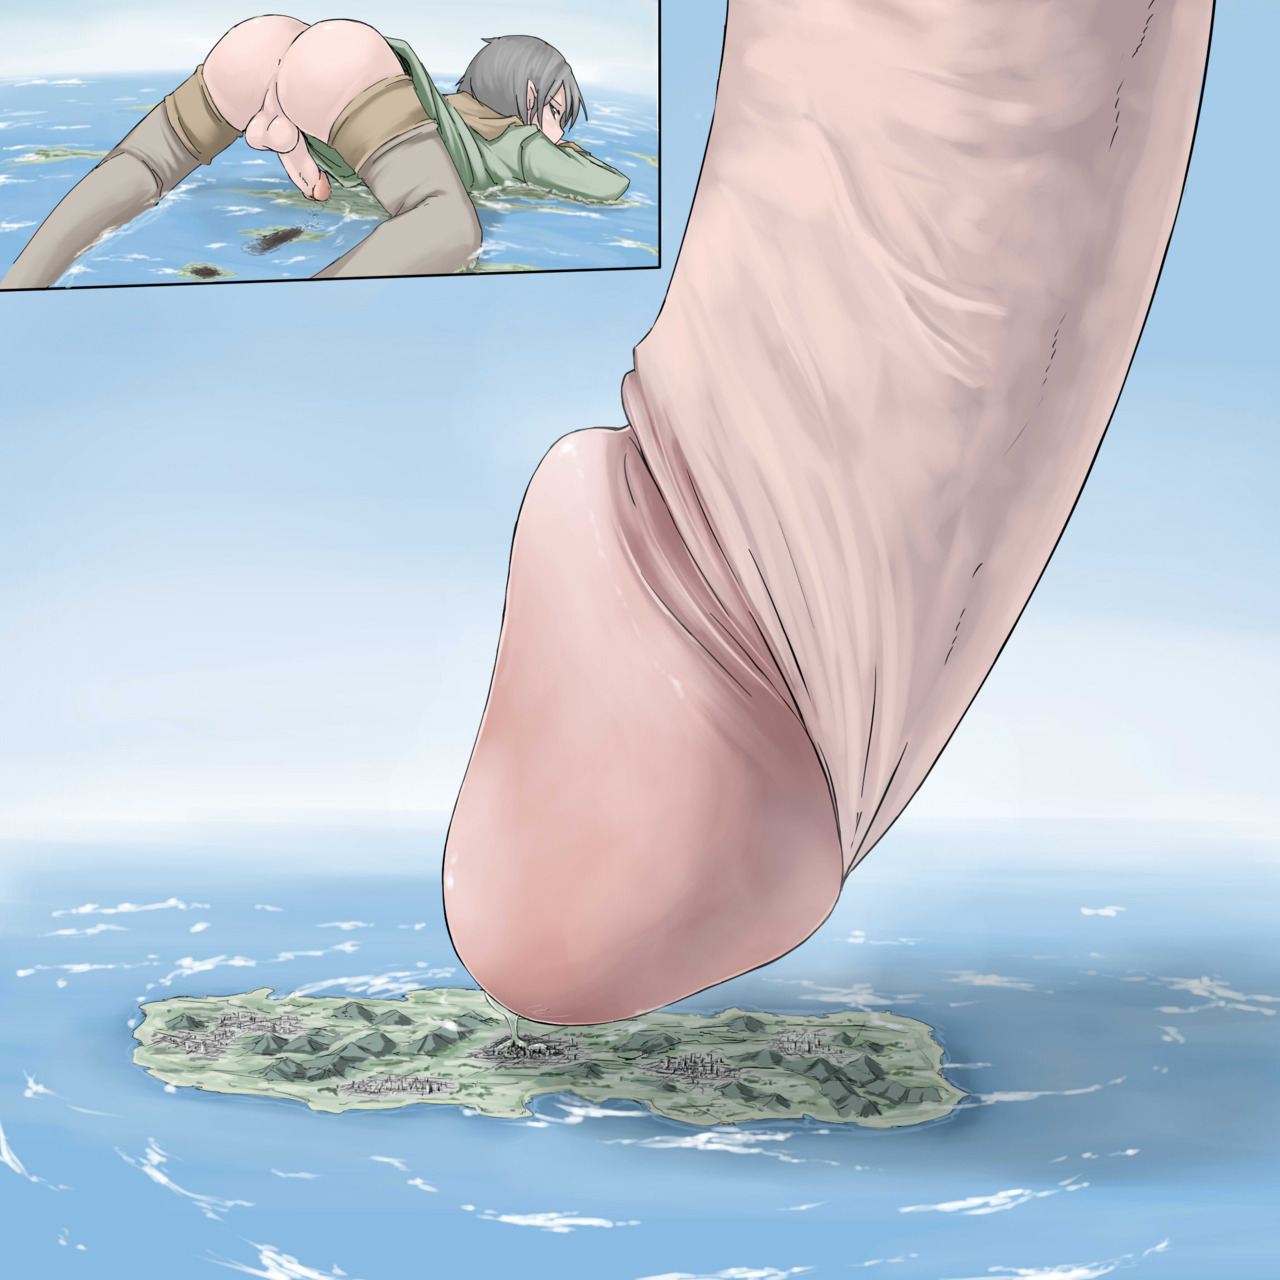 Yesss Tina, giantess manytubeporn the